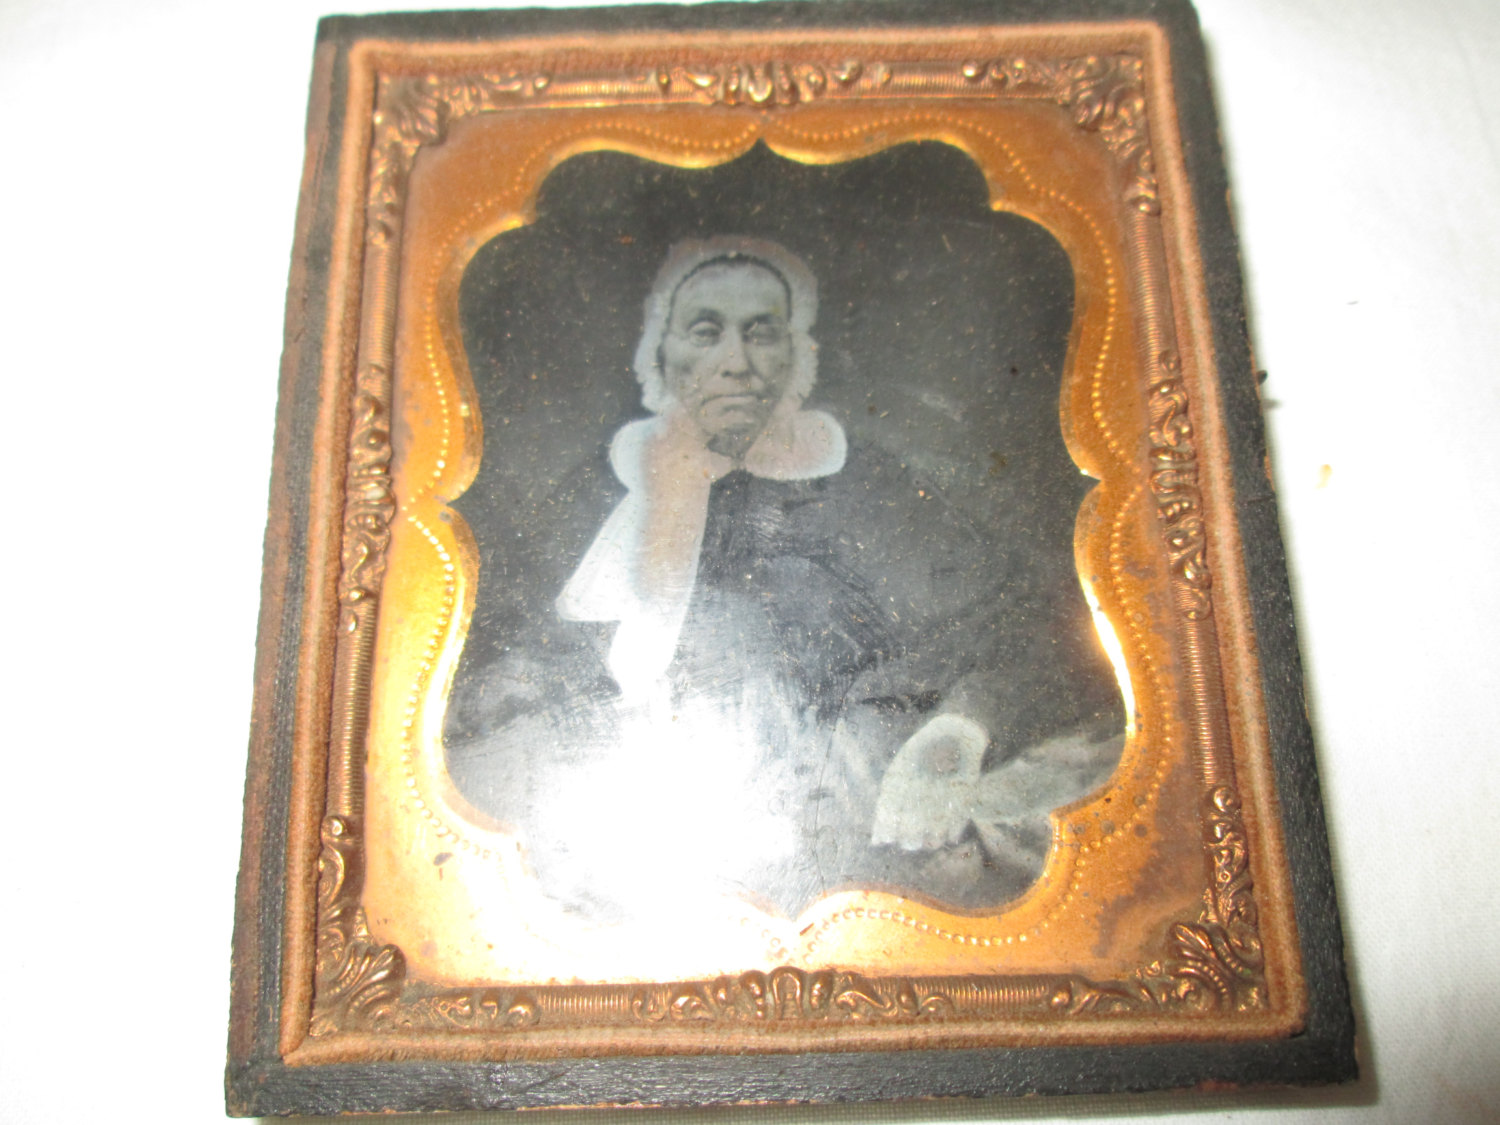 Antique Leather Travel Frame 1/2 case with Ambrotype woman photo glass with gold trim Civil War Photo 1854-1865 Instant ancestors